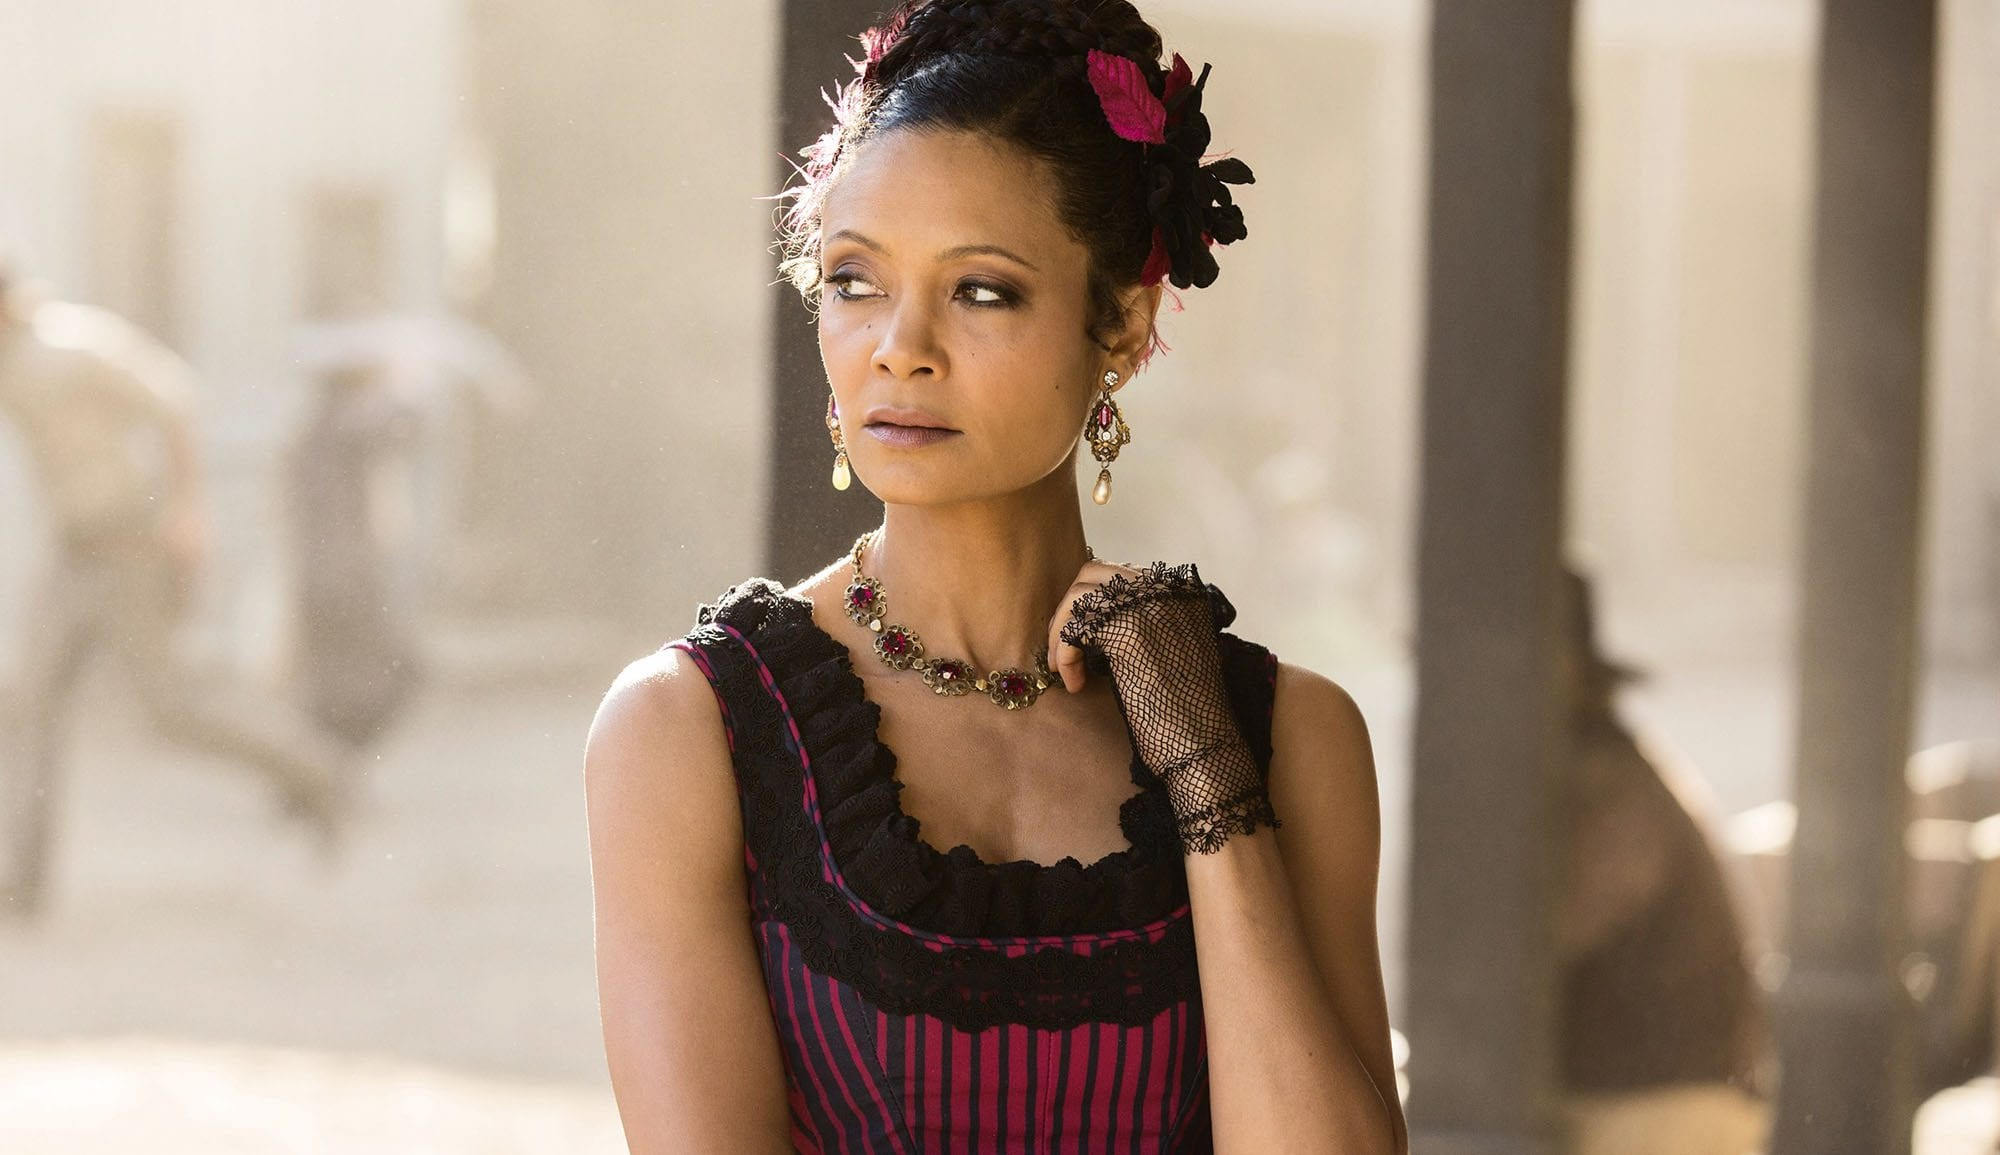 'Westworld' is back and the women of Sweetwater mean serious business. In the first episode of S2, we saw homely cowgirl Delores (Evan Rachel Wood) packing some heavy artillery and waging a war for her autonomy, while former prostitute Maeve (Thandie Newton) raises hell for the same battle.